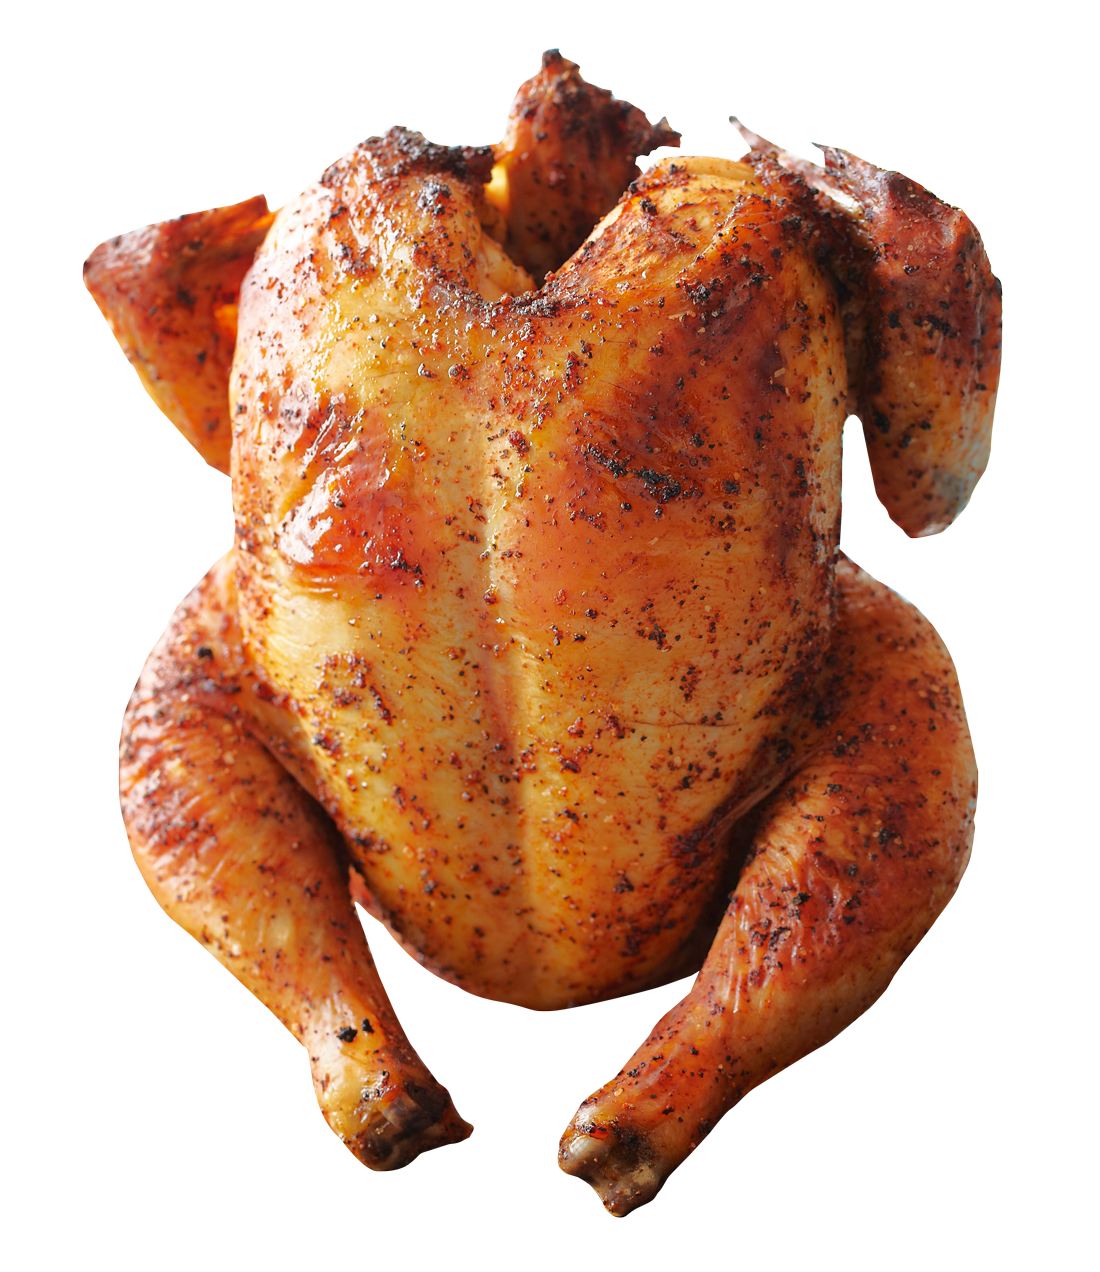 Grilled chicken png. Grill image purepng free